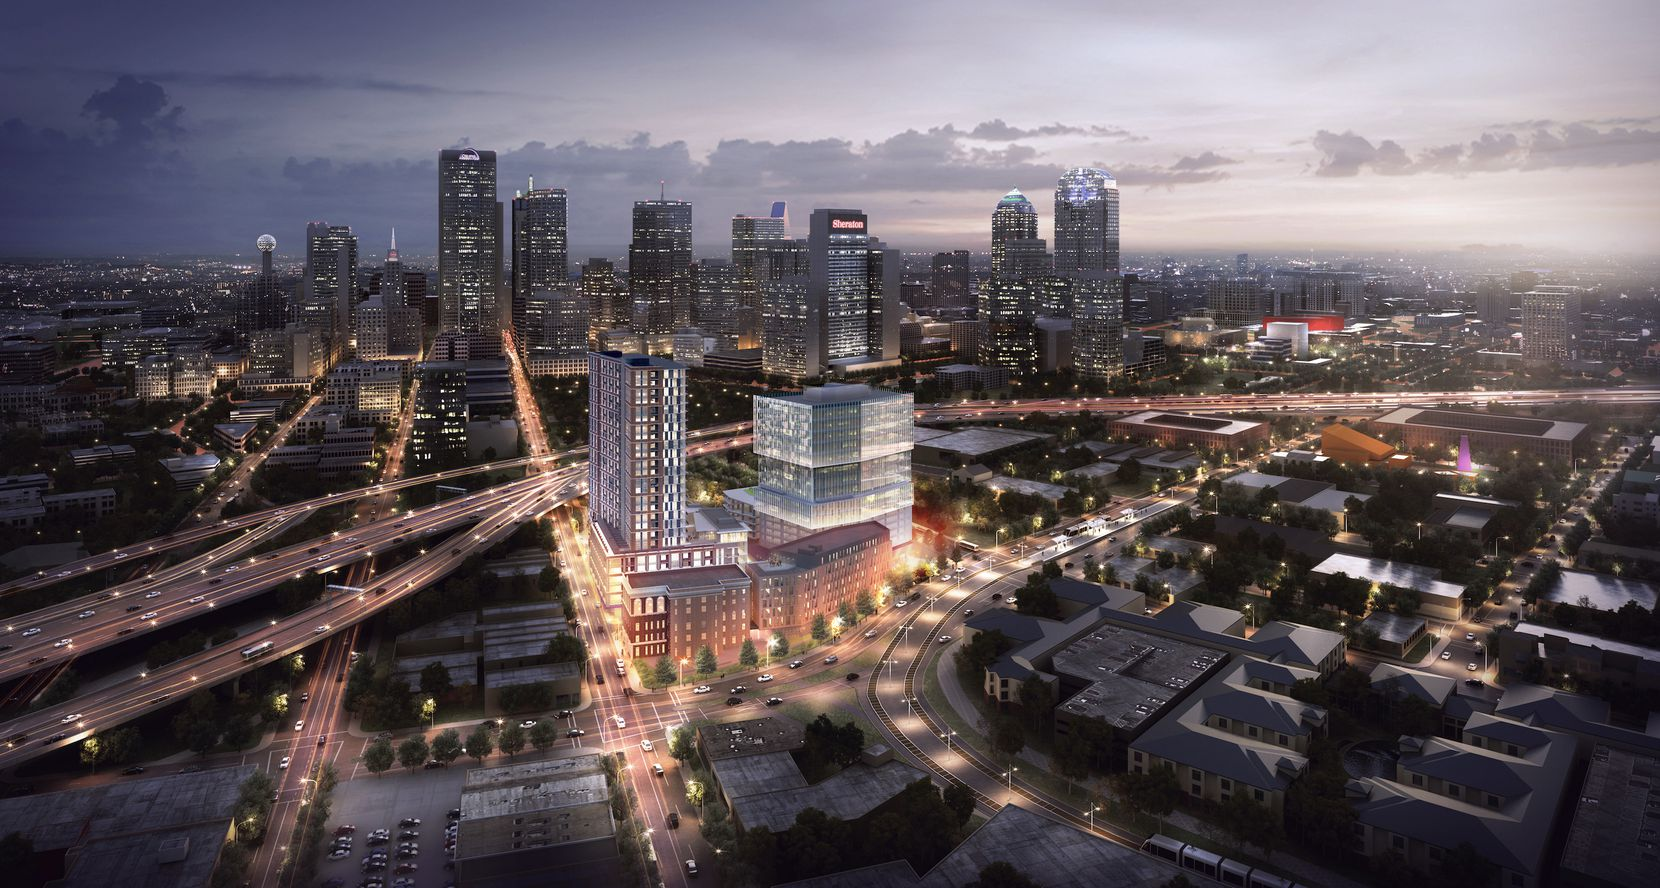 The Epic mixed-use project is being built on the eastern edge of downtown Dallas.